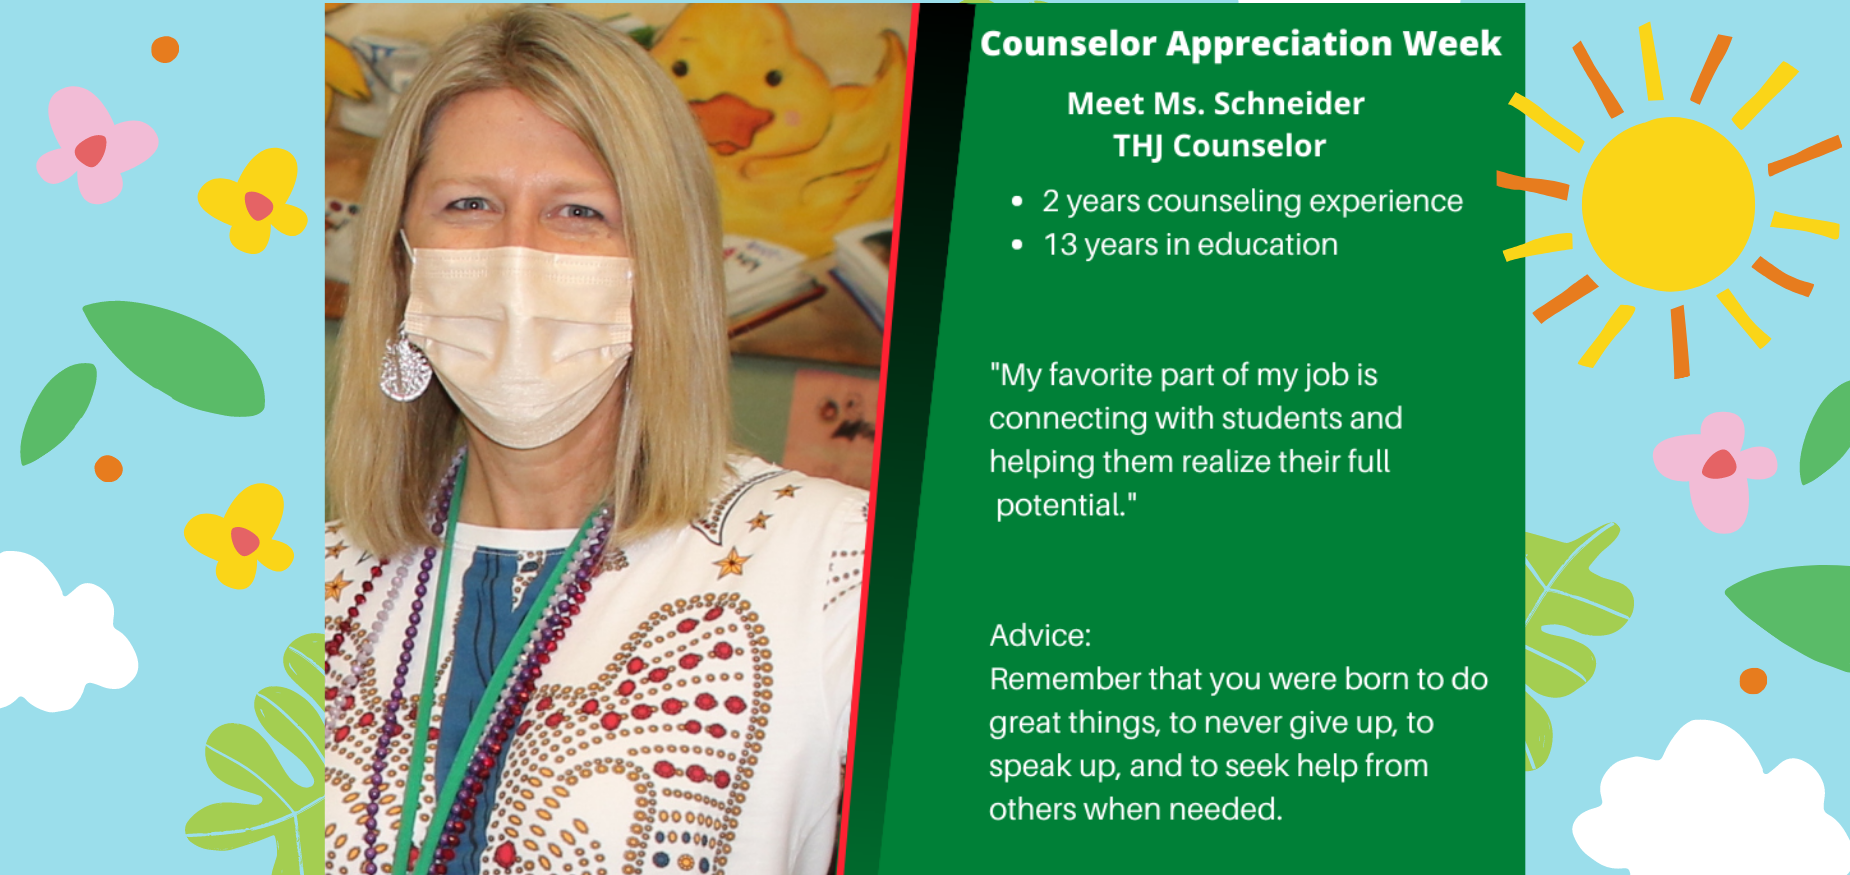 counselor appreciation week